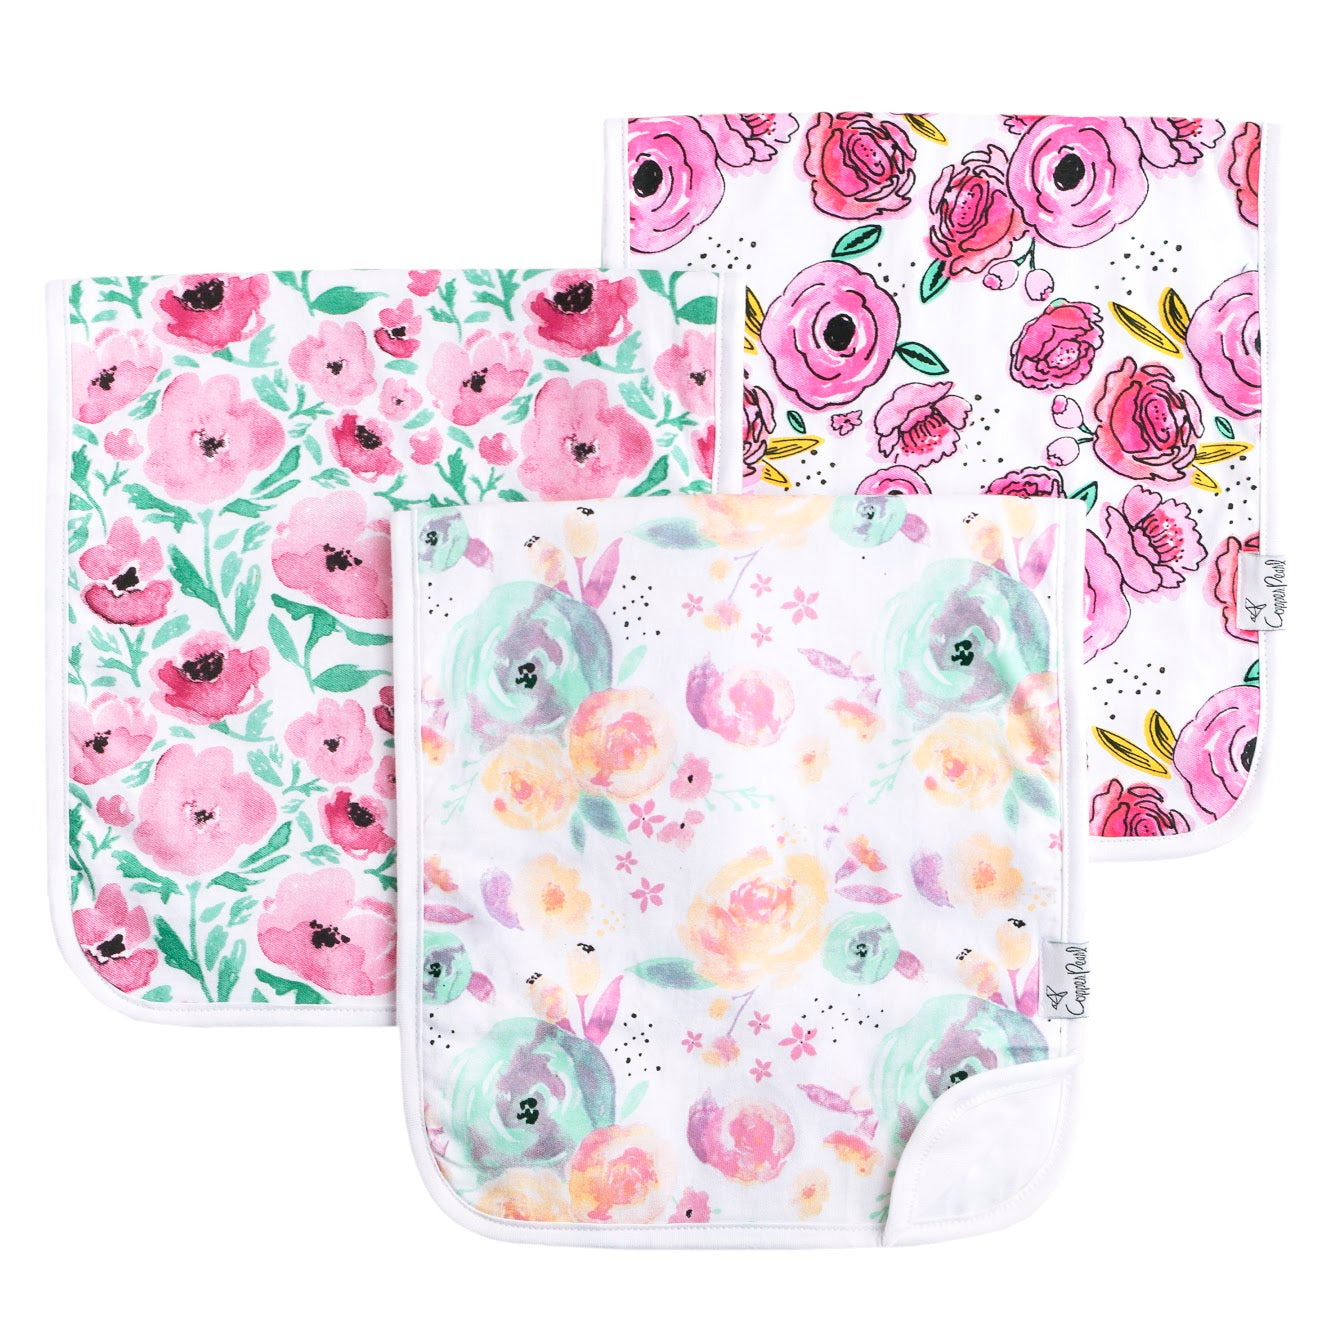 Bloom Burp Cloth Set (3-pack)